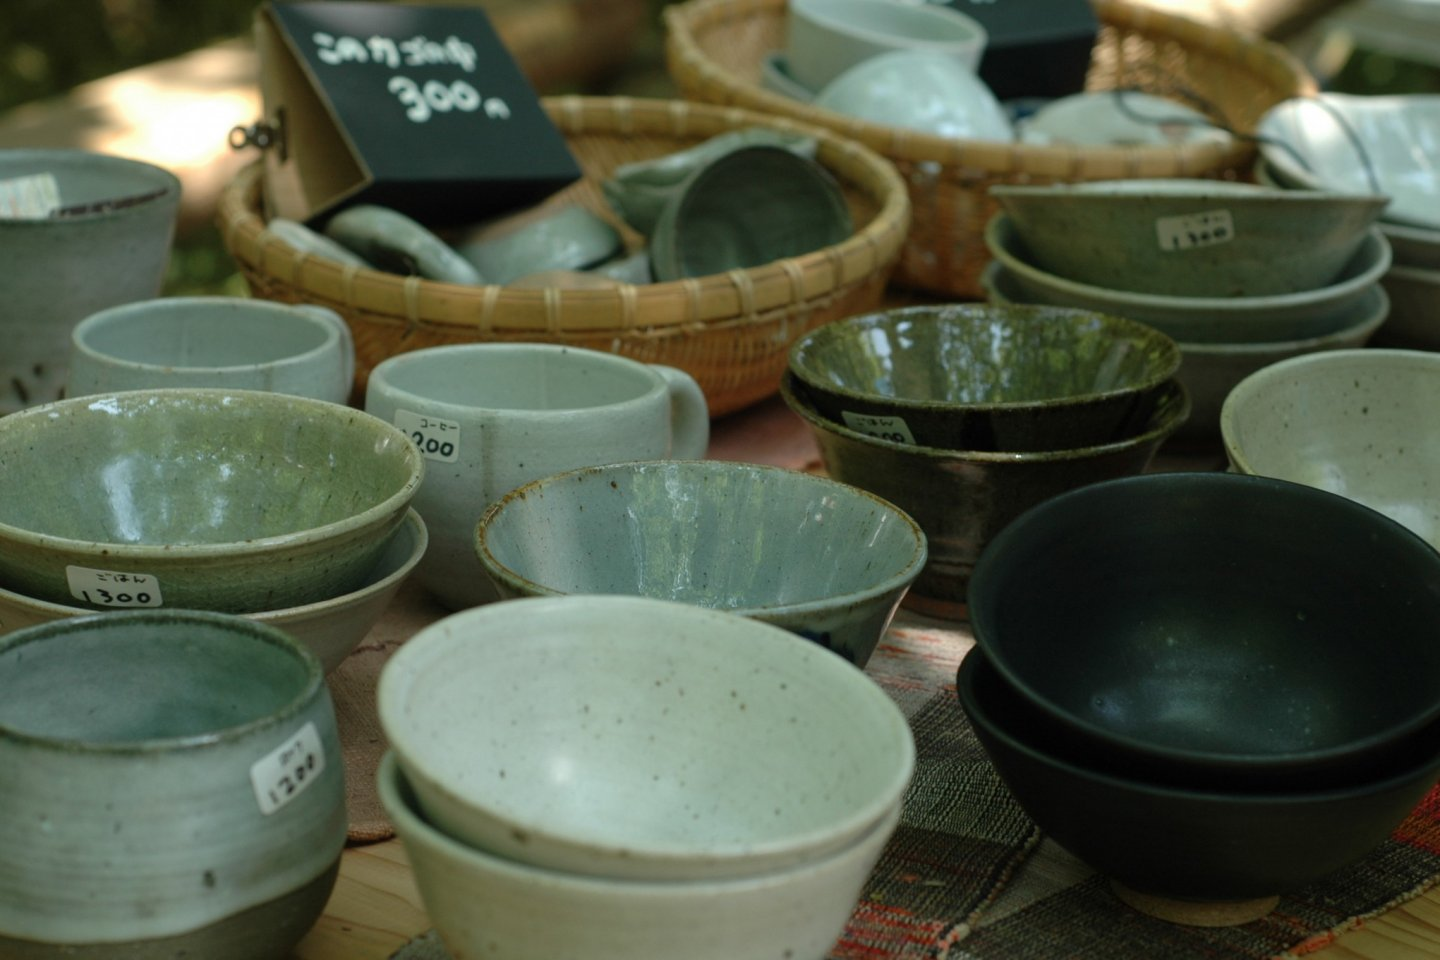 Beautifully handcrafted tea cups and bowls.